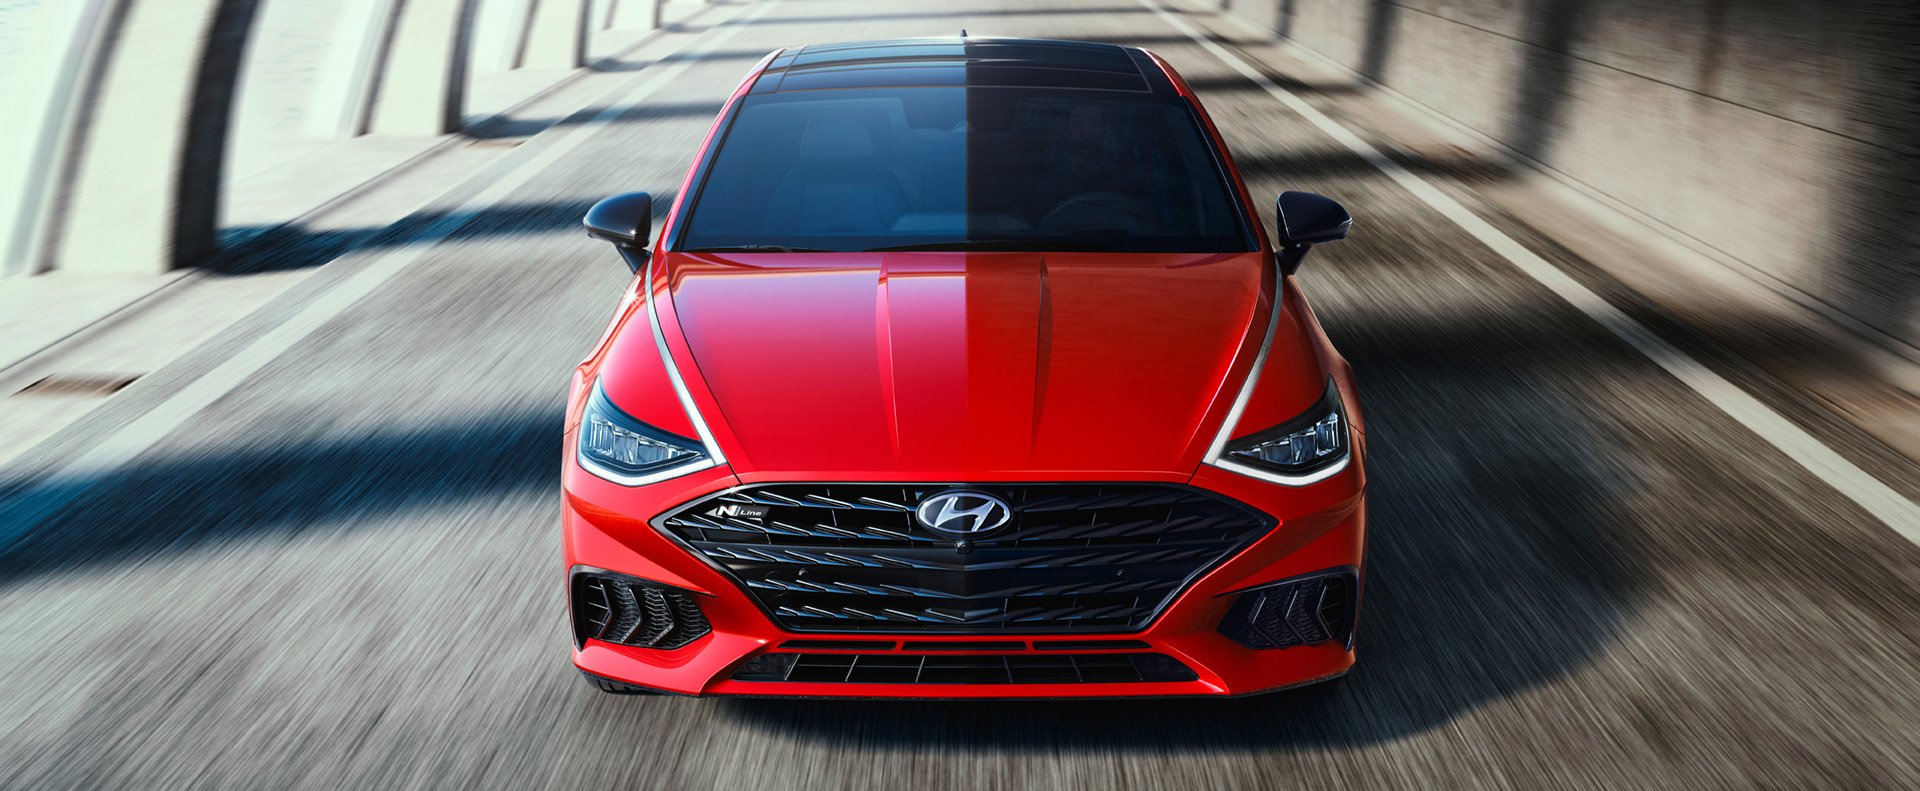 Red 2021 Sonata N Line: Hyundai's Hot New Sedan Gets a  High-Performance Look